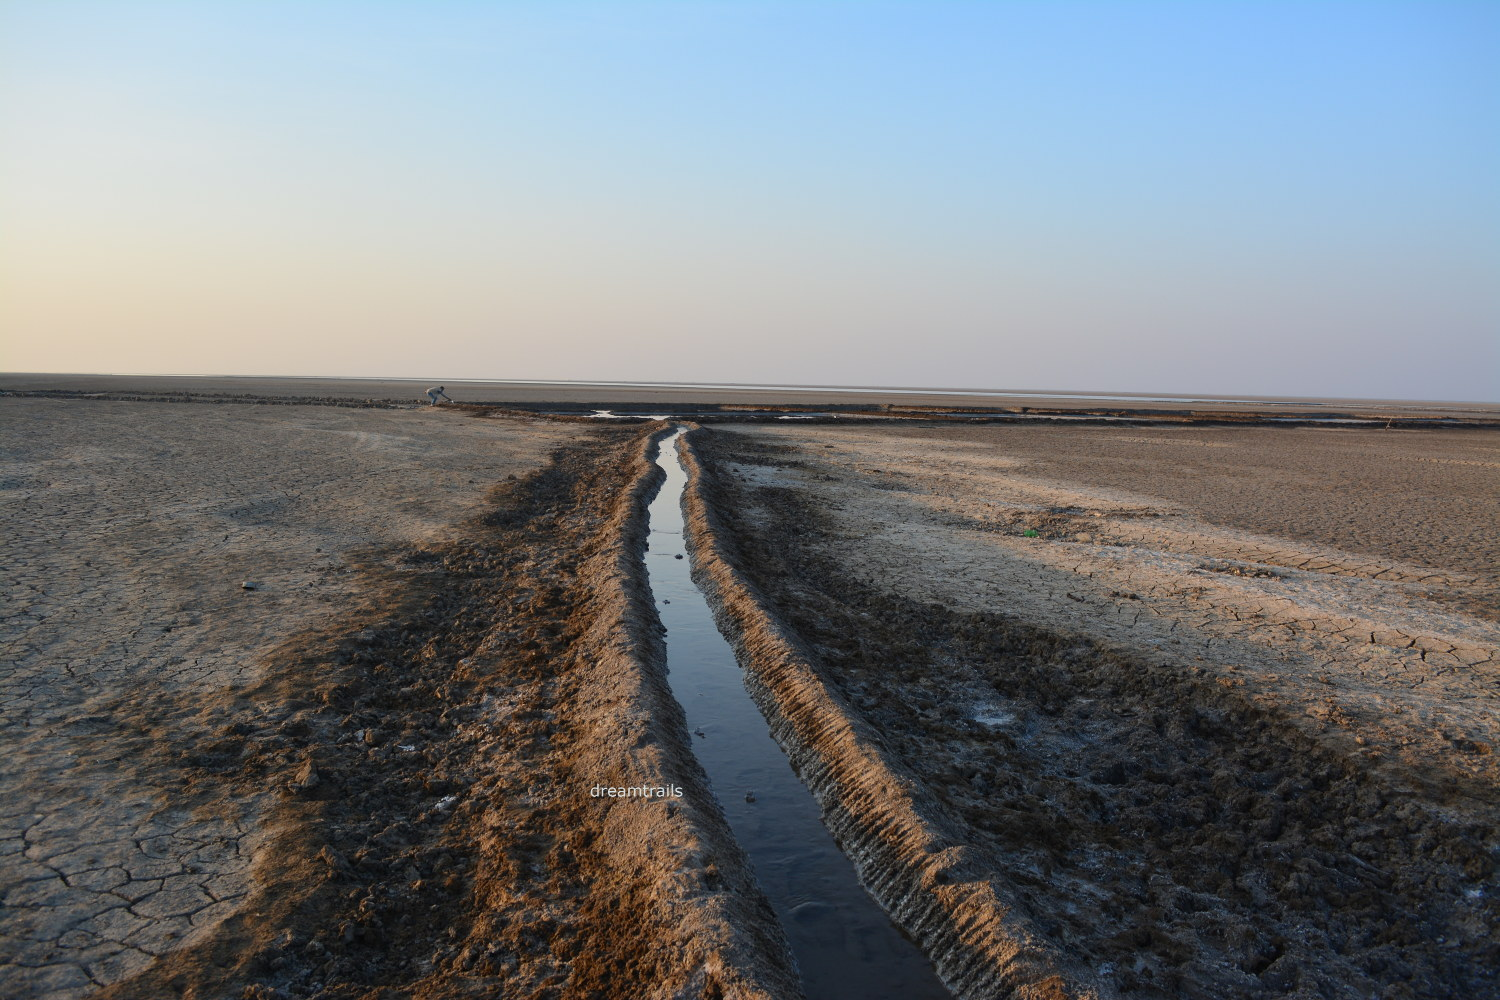 Salt Extraction at Little Rann of Kutch